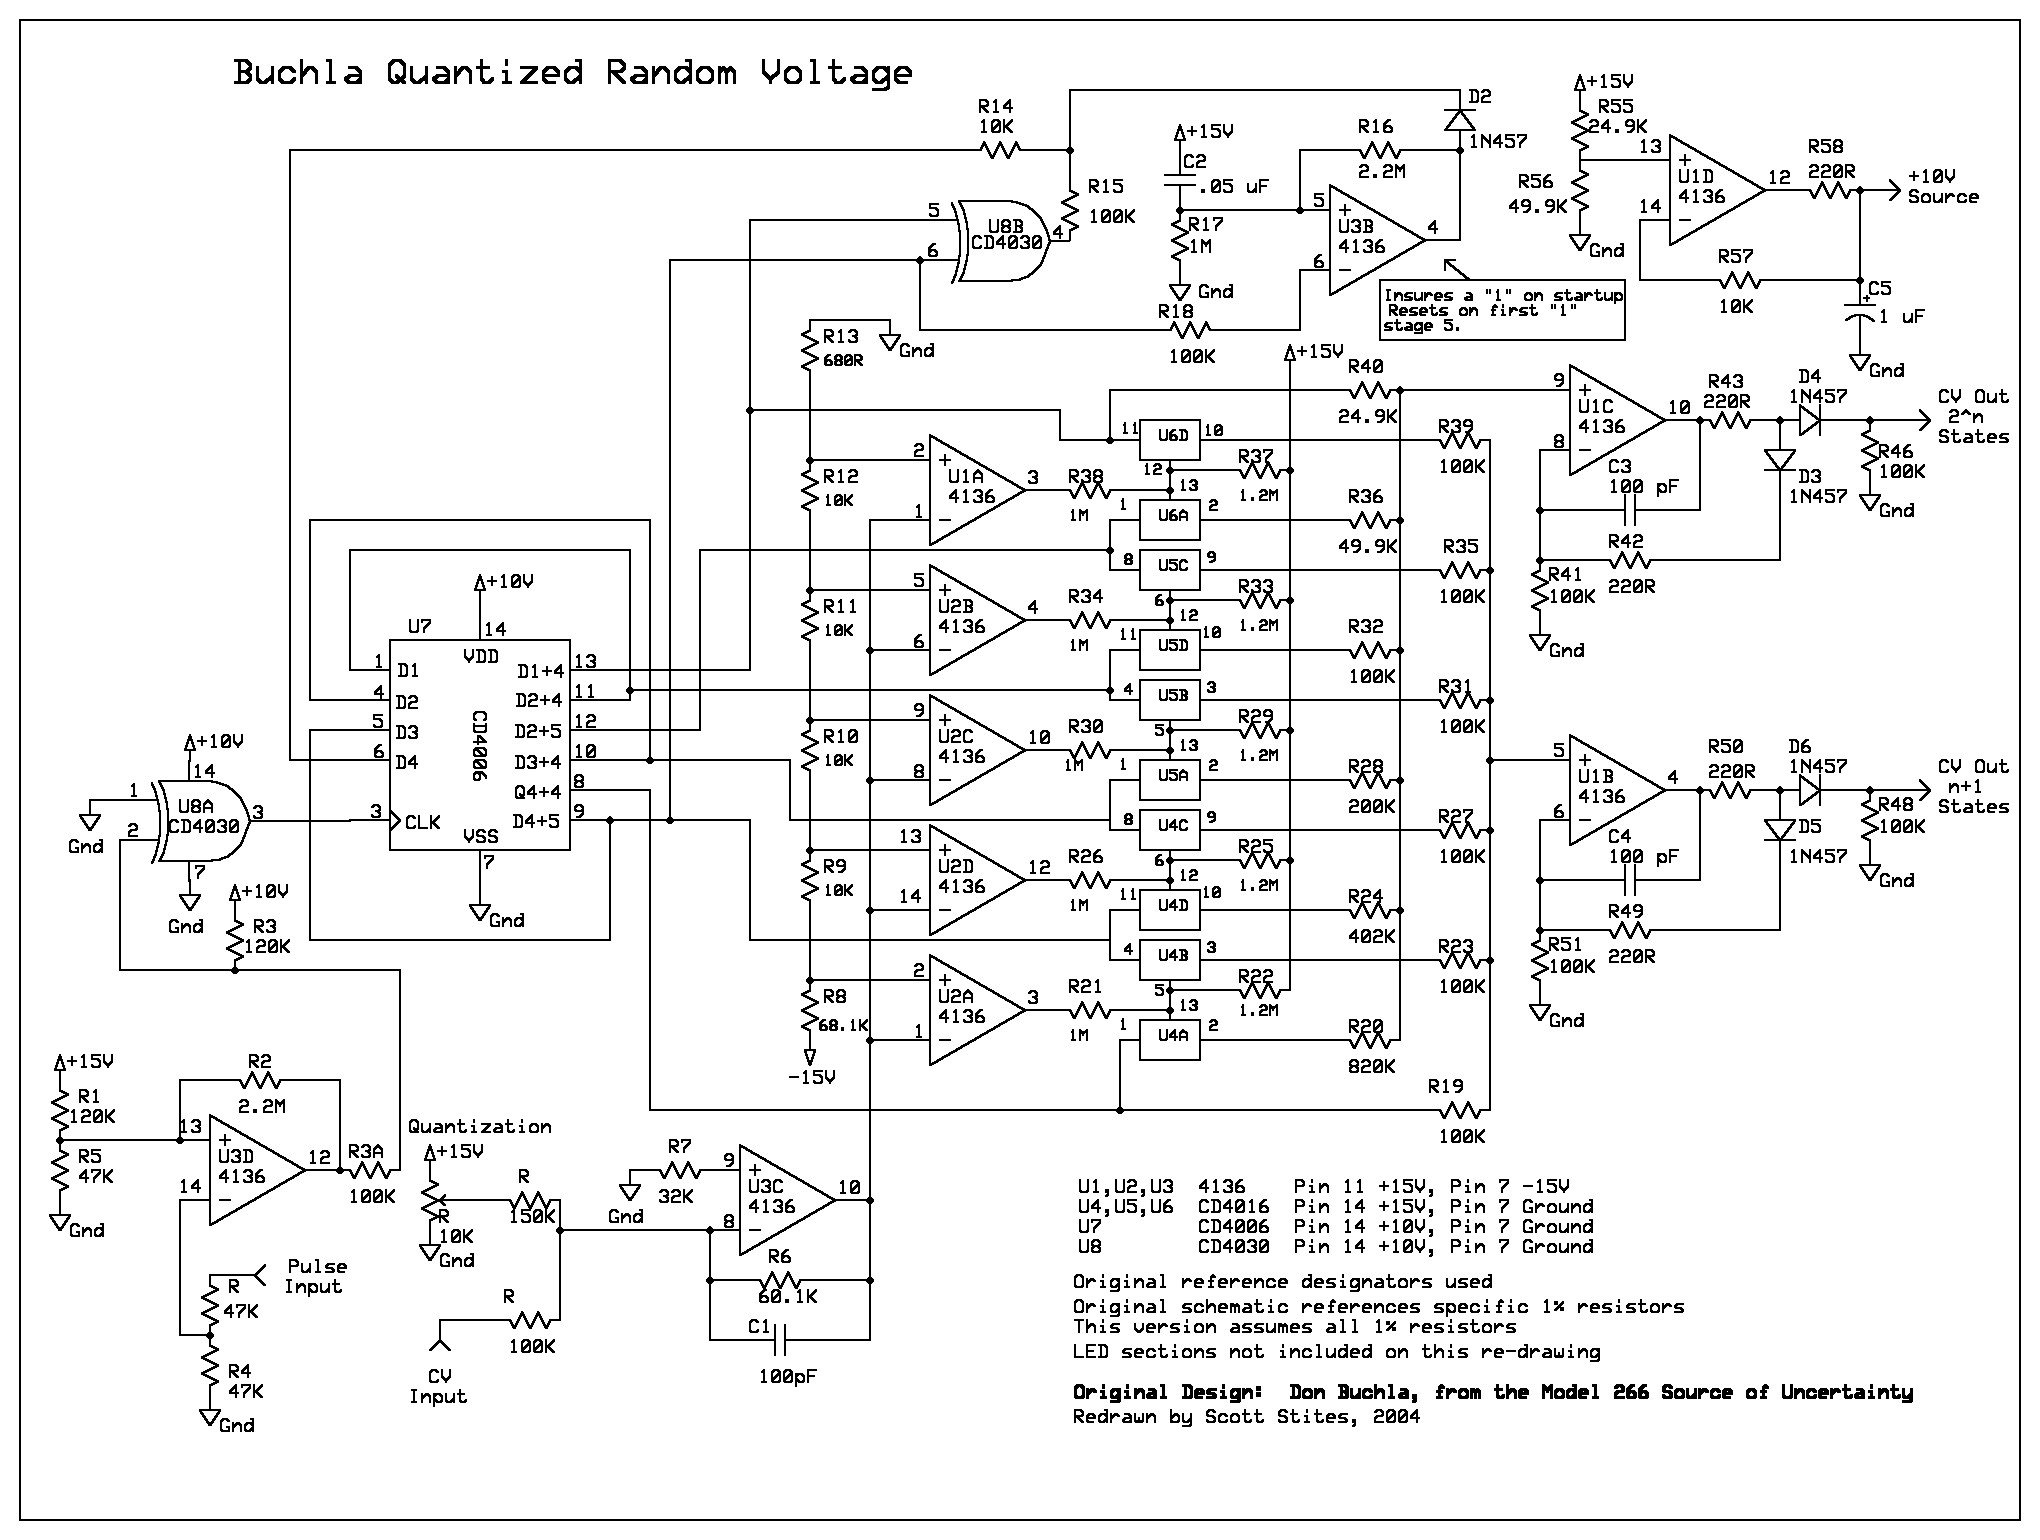 Surprising Qmark Heater Wiring Diagram Wiring Diagram For Qmark Heater Wiring Cloud Domeilariaidewilluminateatxorg